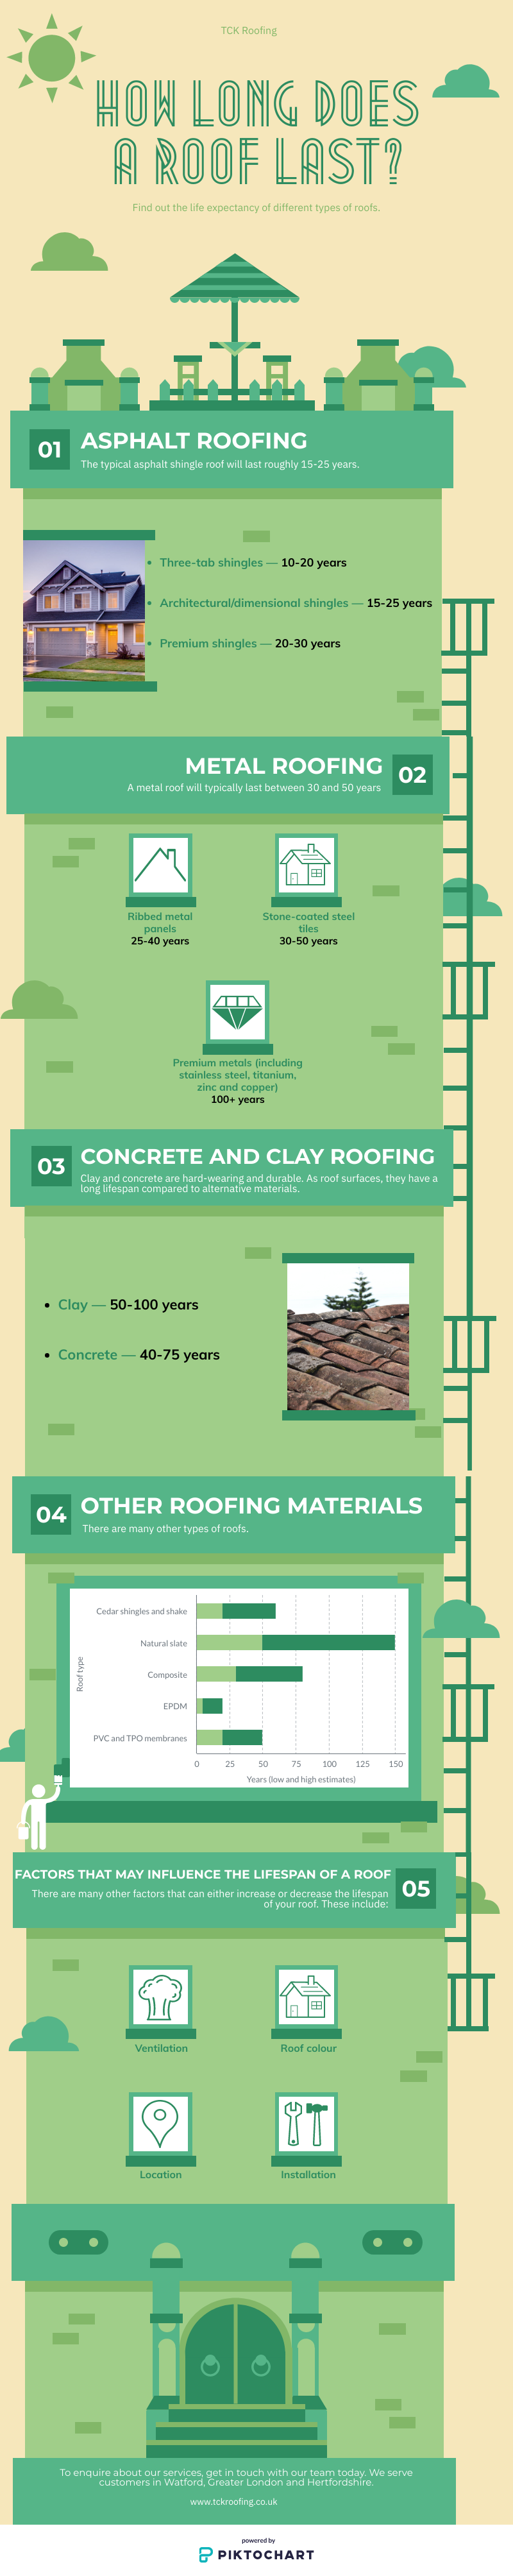 Roofing Life expectancy how long does my roof last infographic